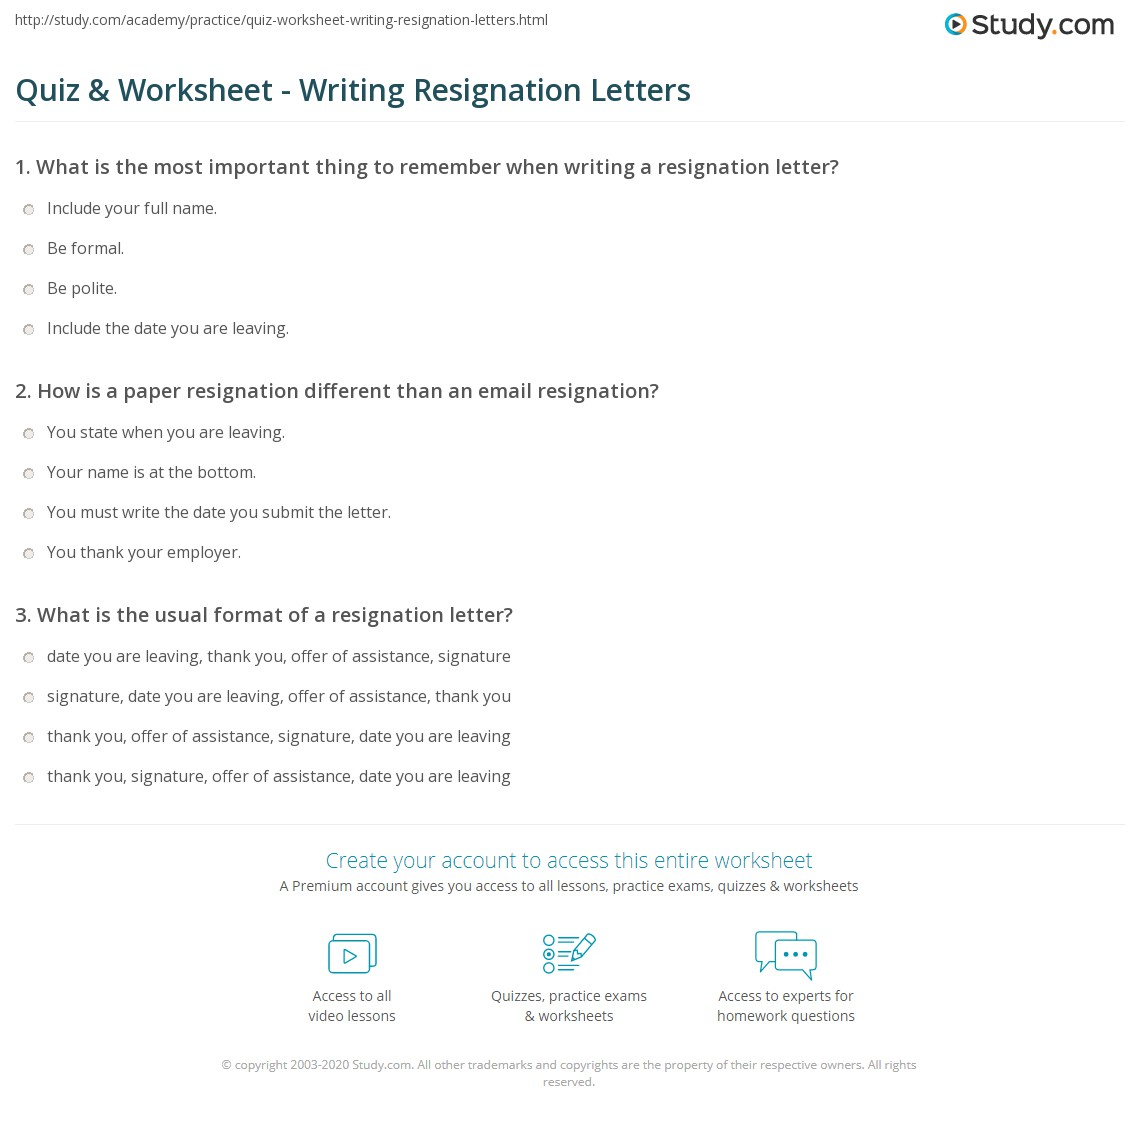 quiz worksheet writing resignation letters study com